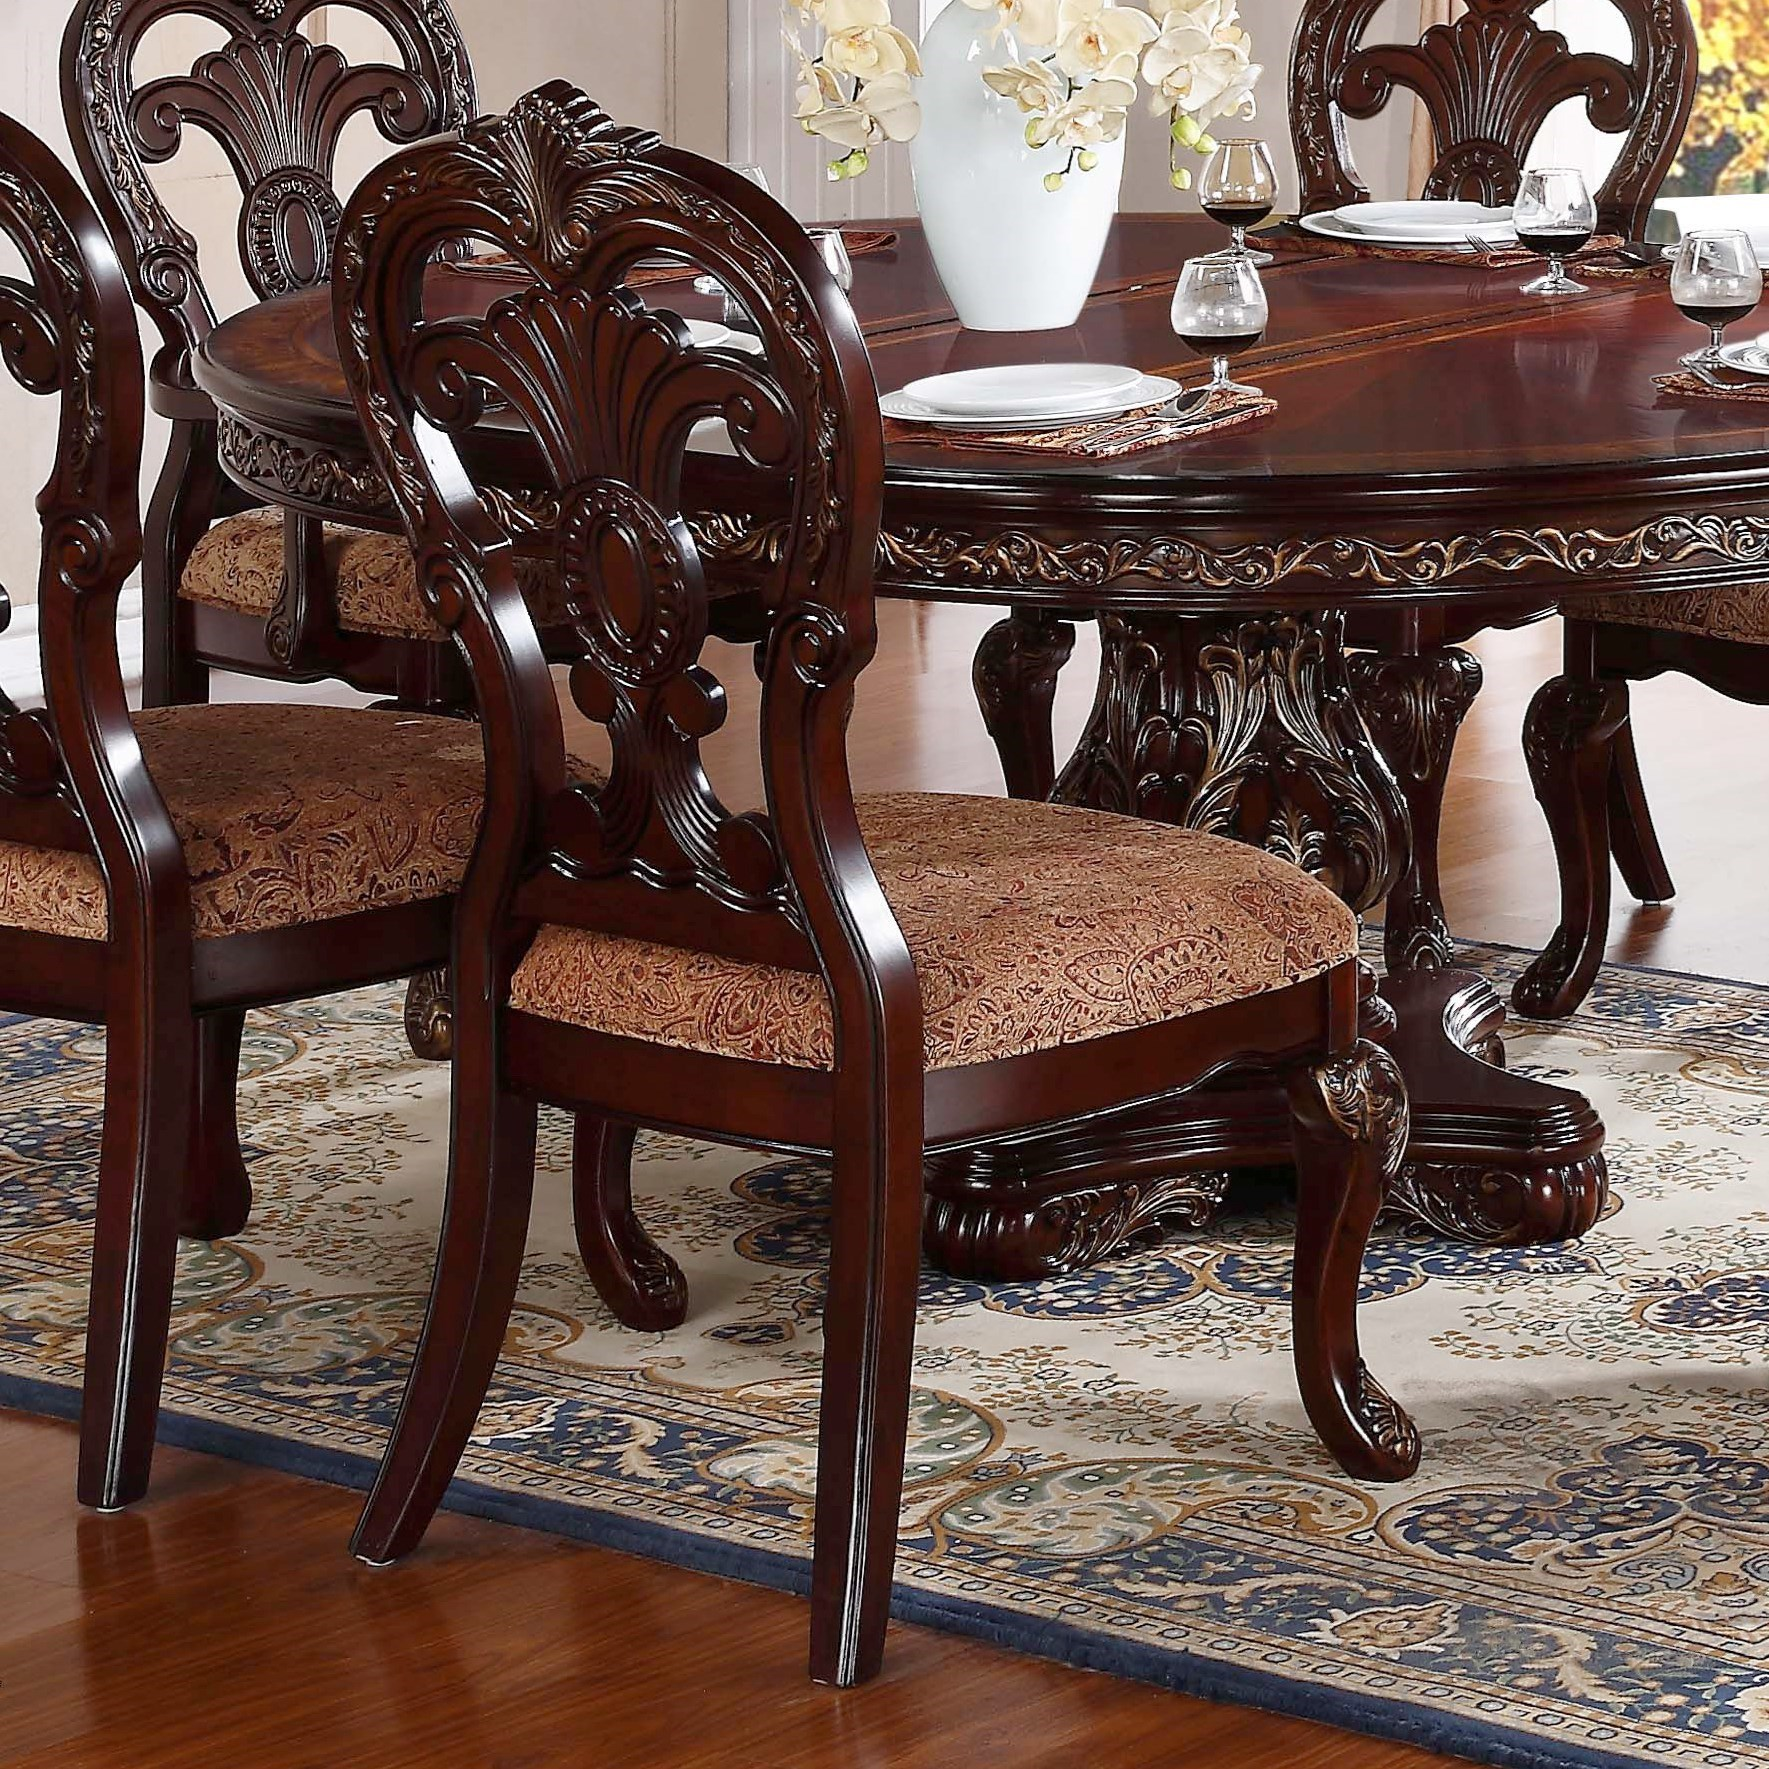 Side Chairs For Dining Room: Homelegance Deryn Park Traditional Dining Side Chair With